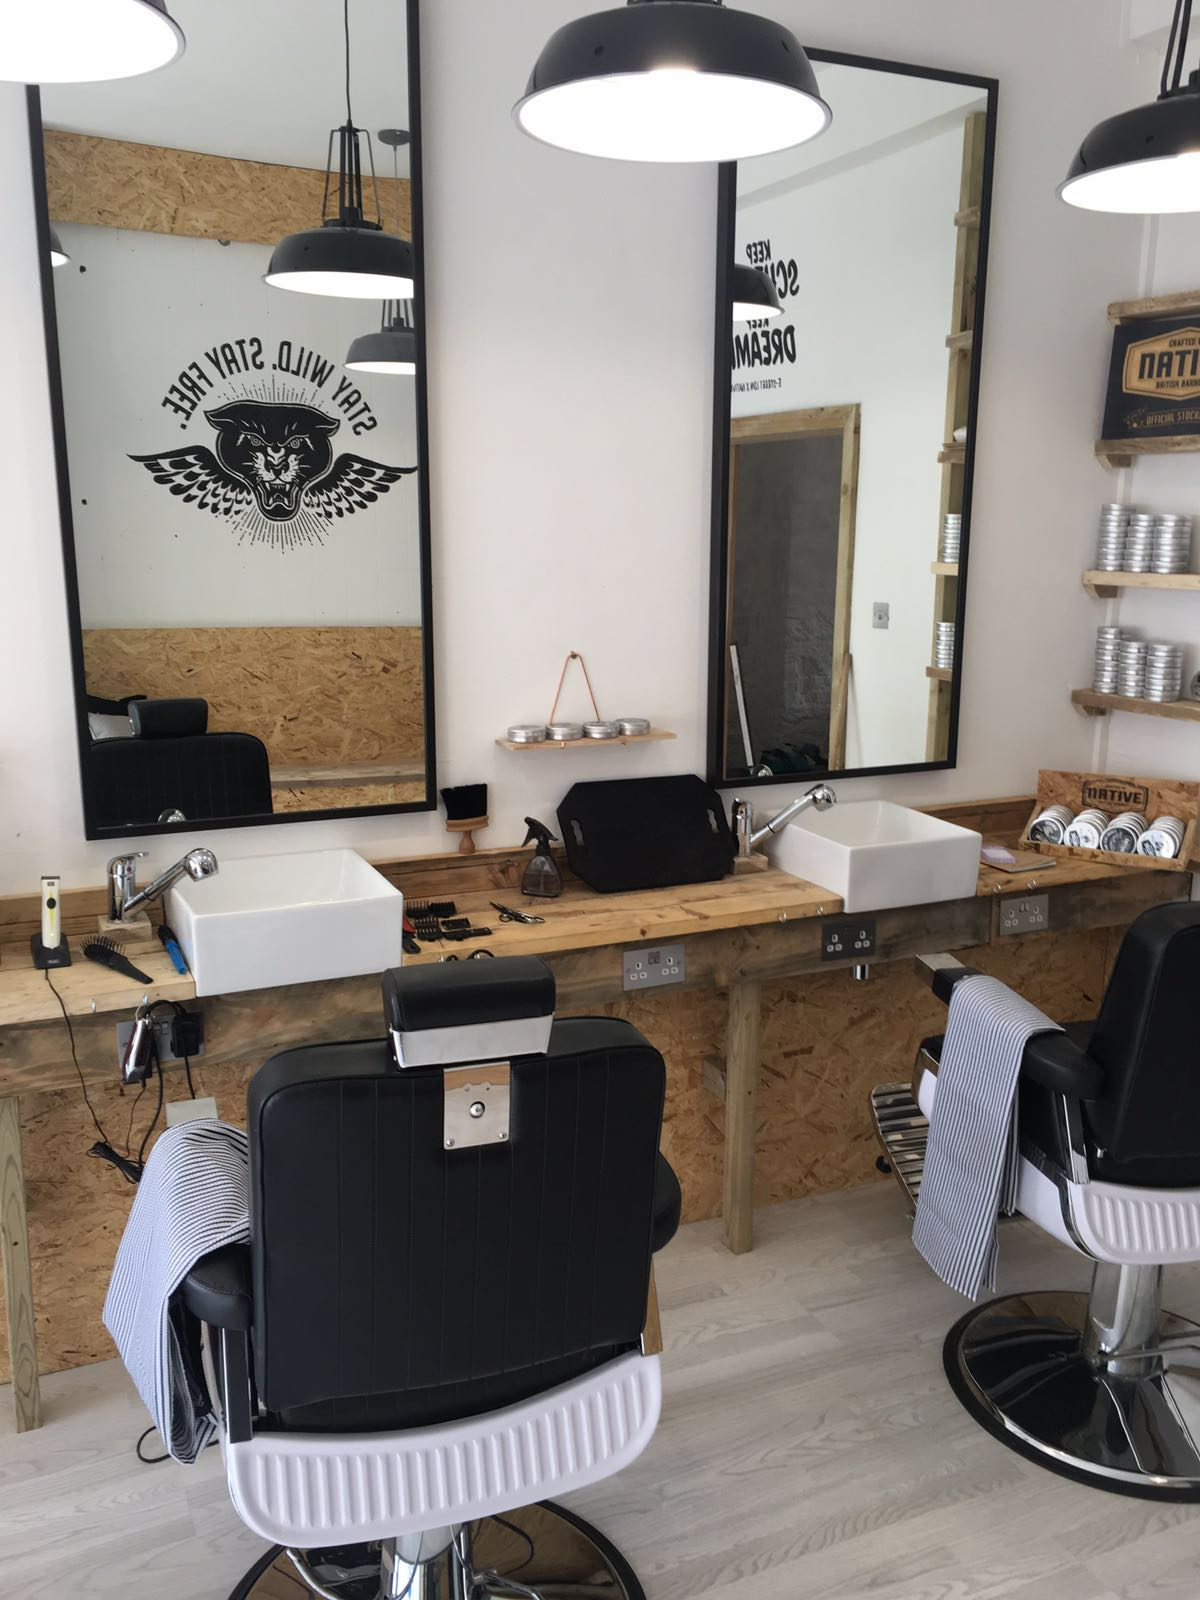 In store photo of Barber Chair at E-Street Barbers Clapton Hackney